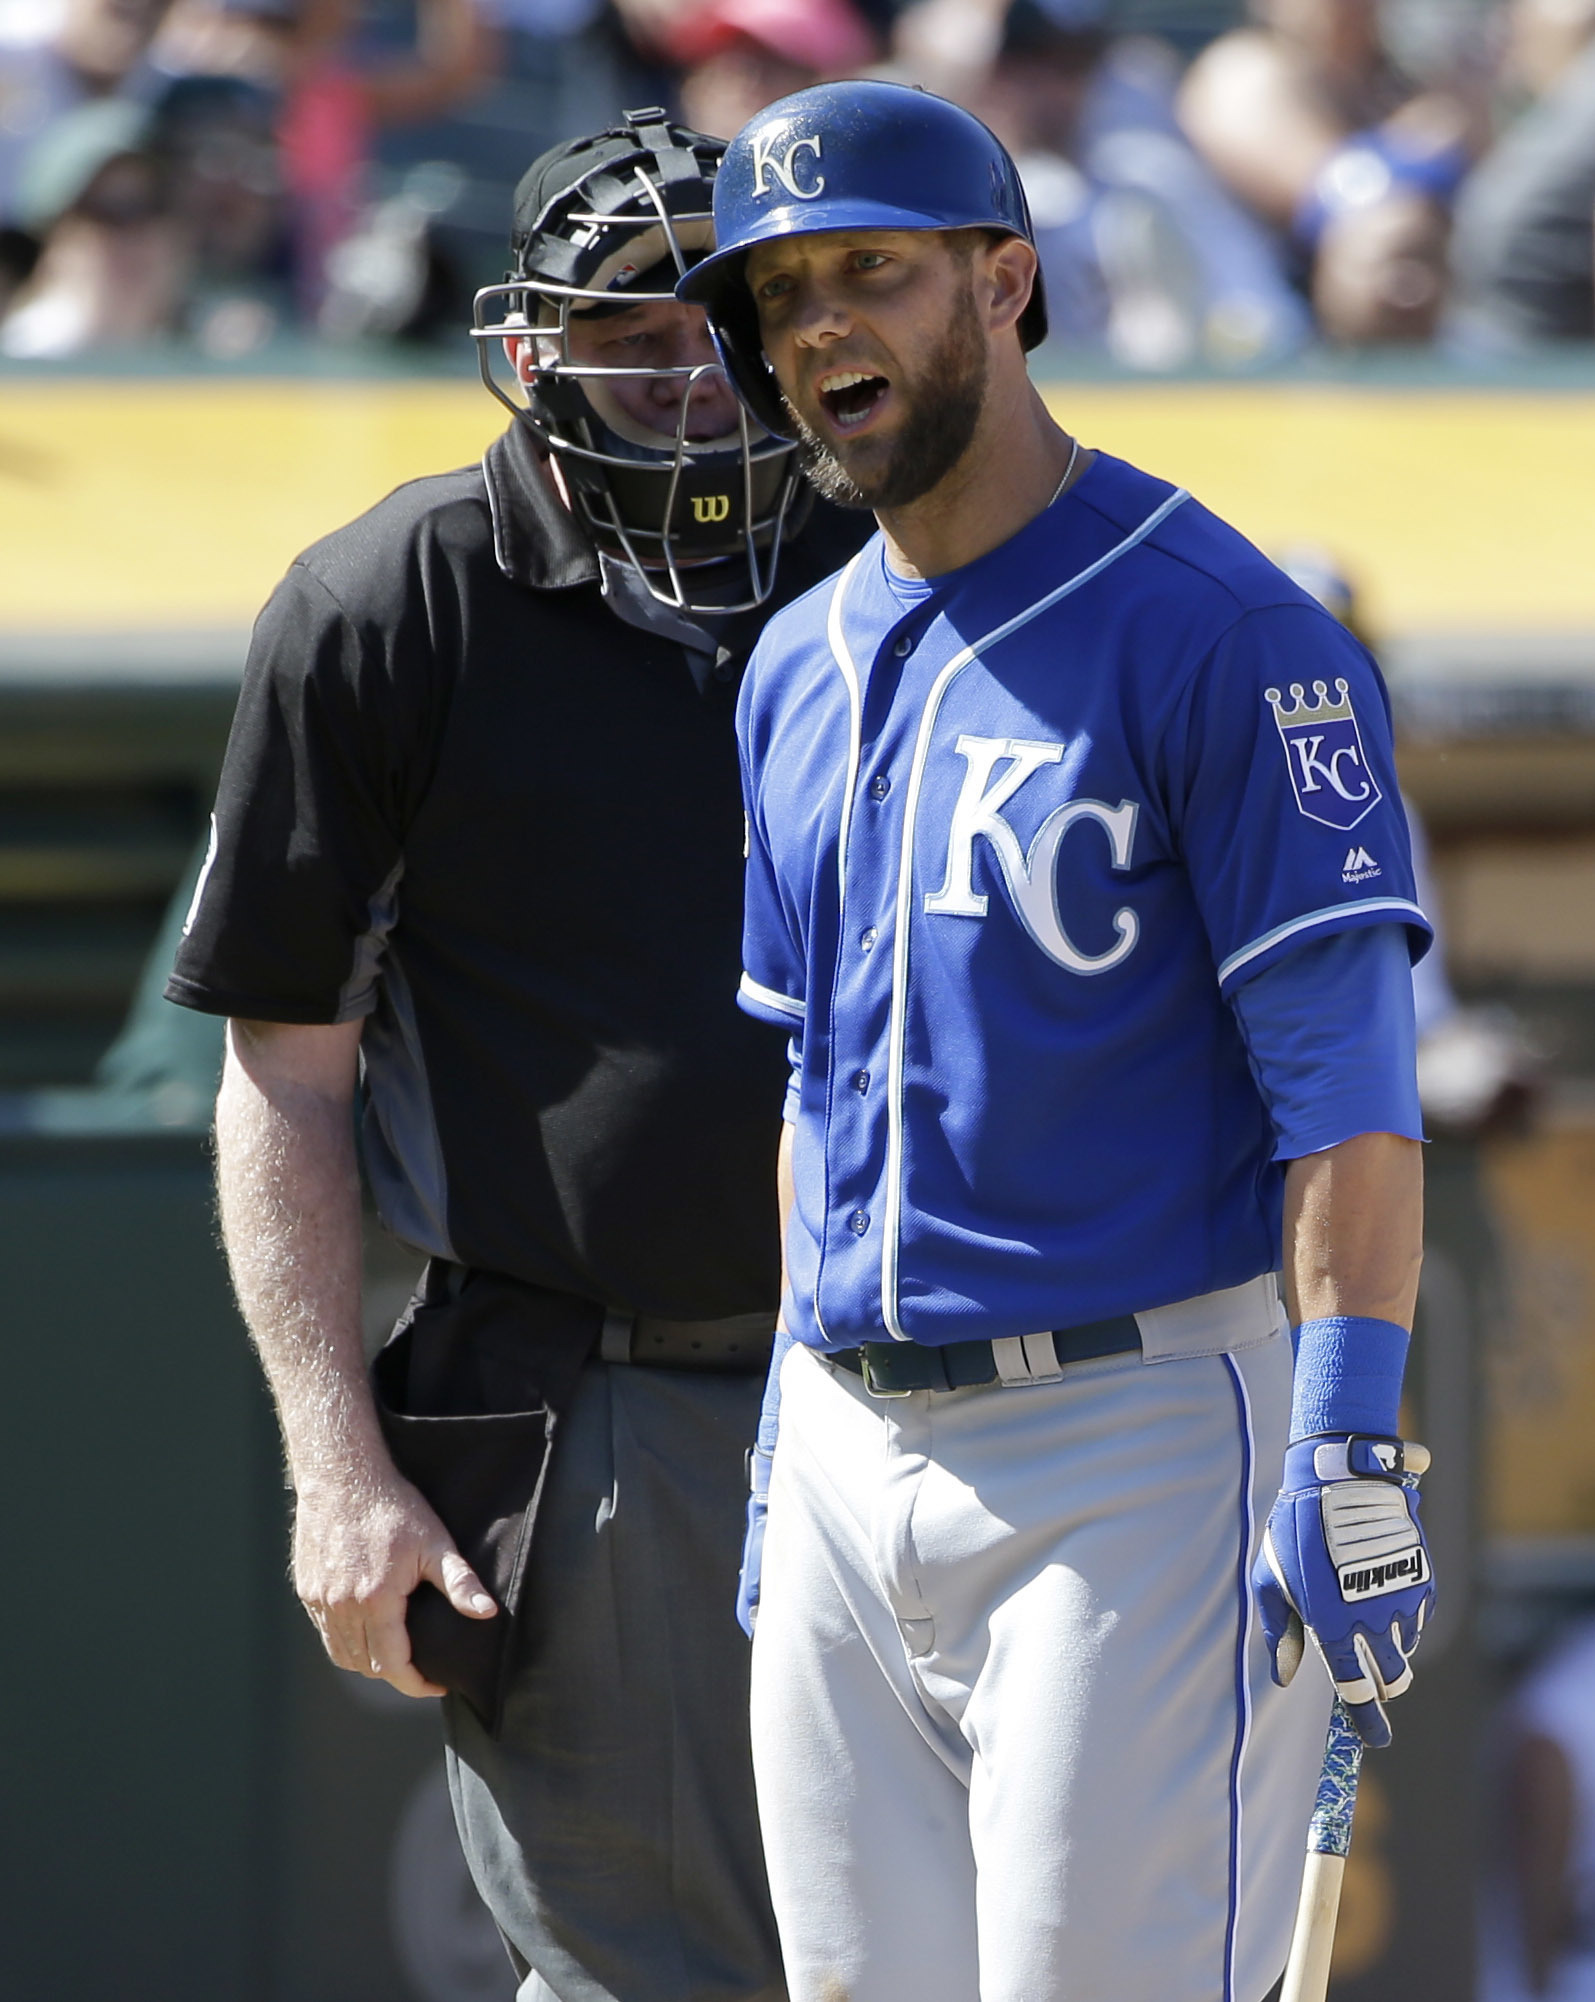 Kansas City Royals' Alex Gordon, right, argues with home plate umpire Quinn Wolcott after being called out on strikes during the ninth inning of a baseball game against the Oakland Athletics, Sunday, April 17, 2016, in Oakland, Calif. (AP Photo/Marcio Jos